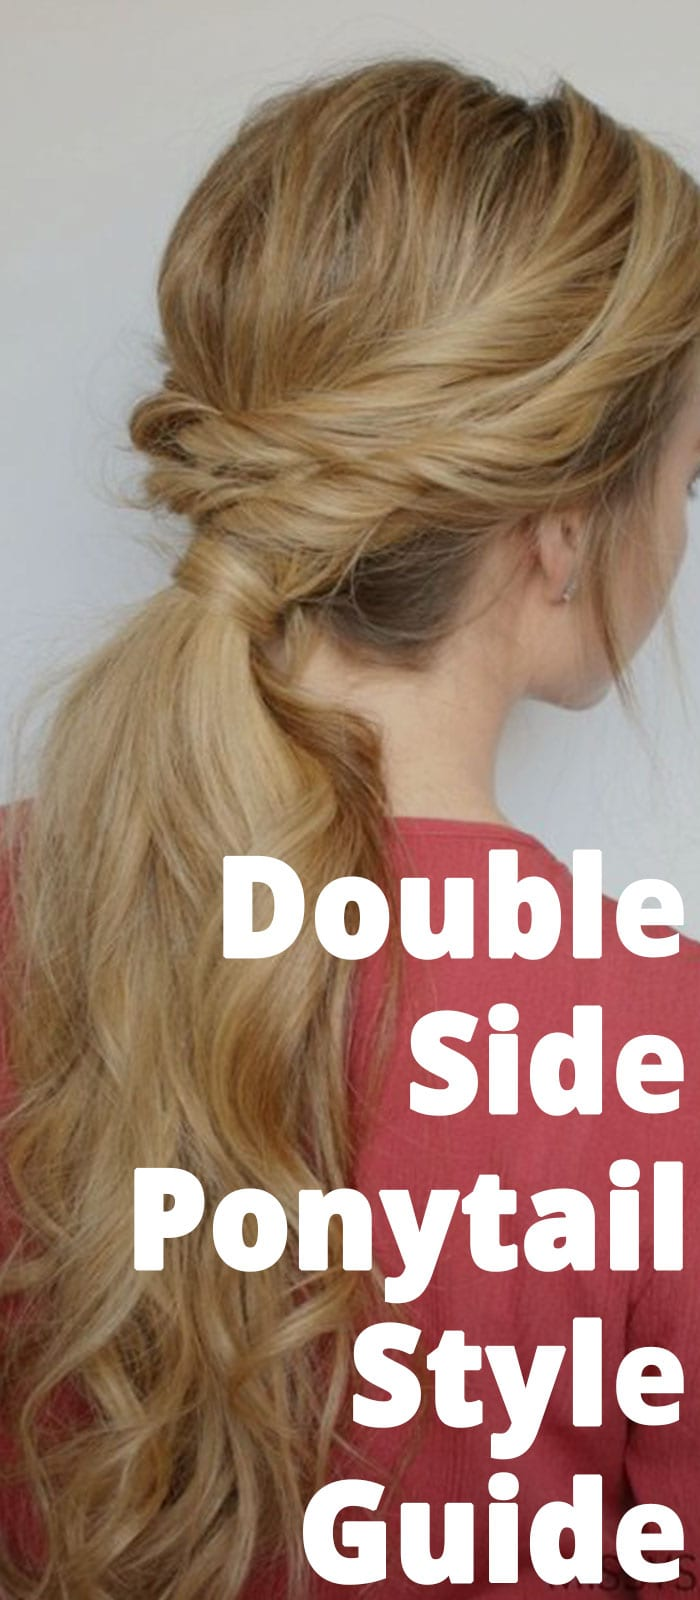 Double Side Ponytail Style Guide!